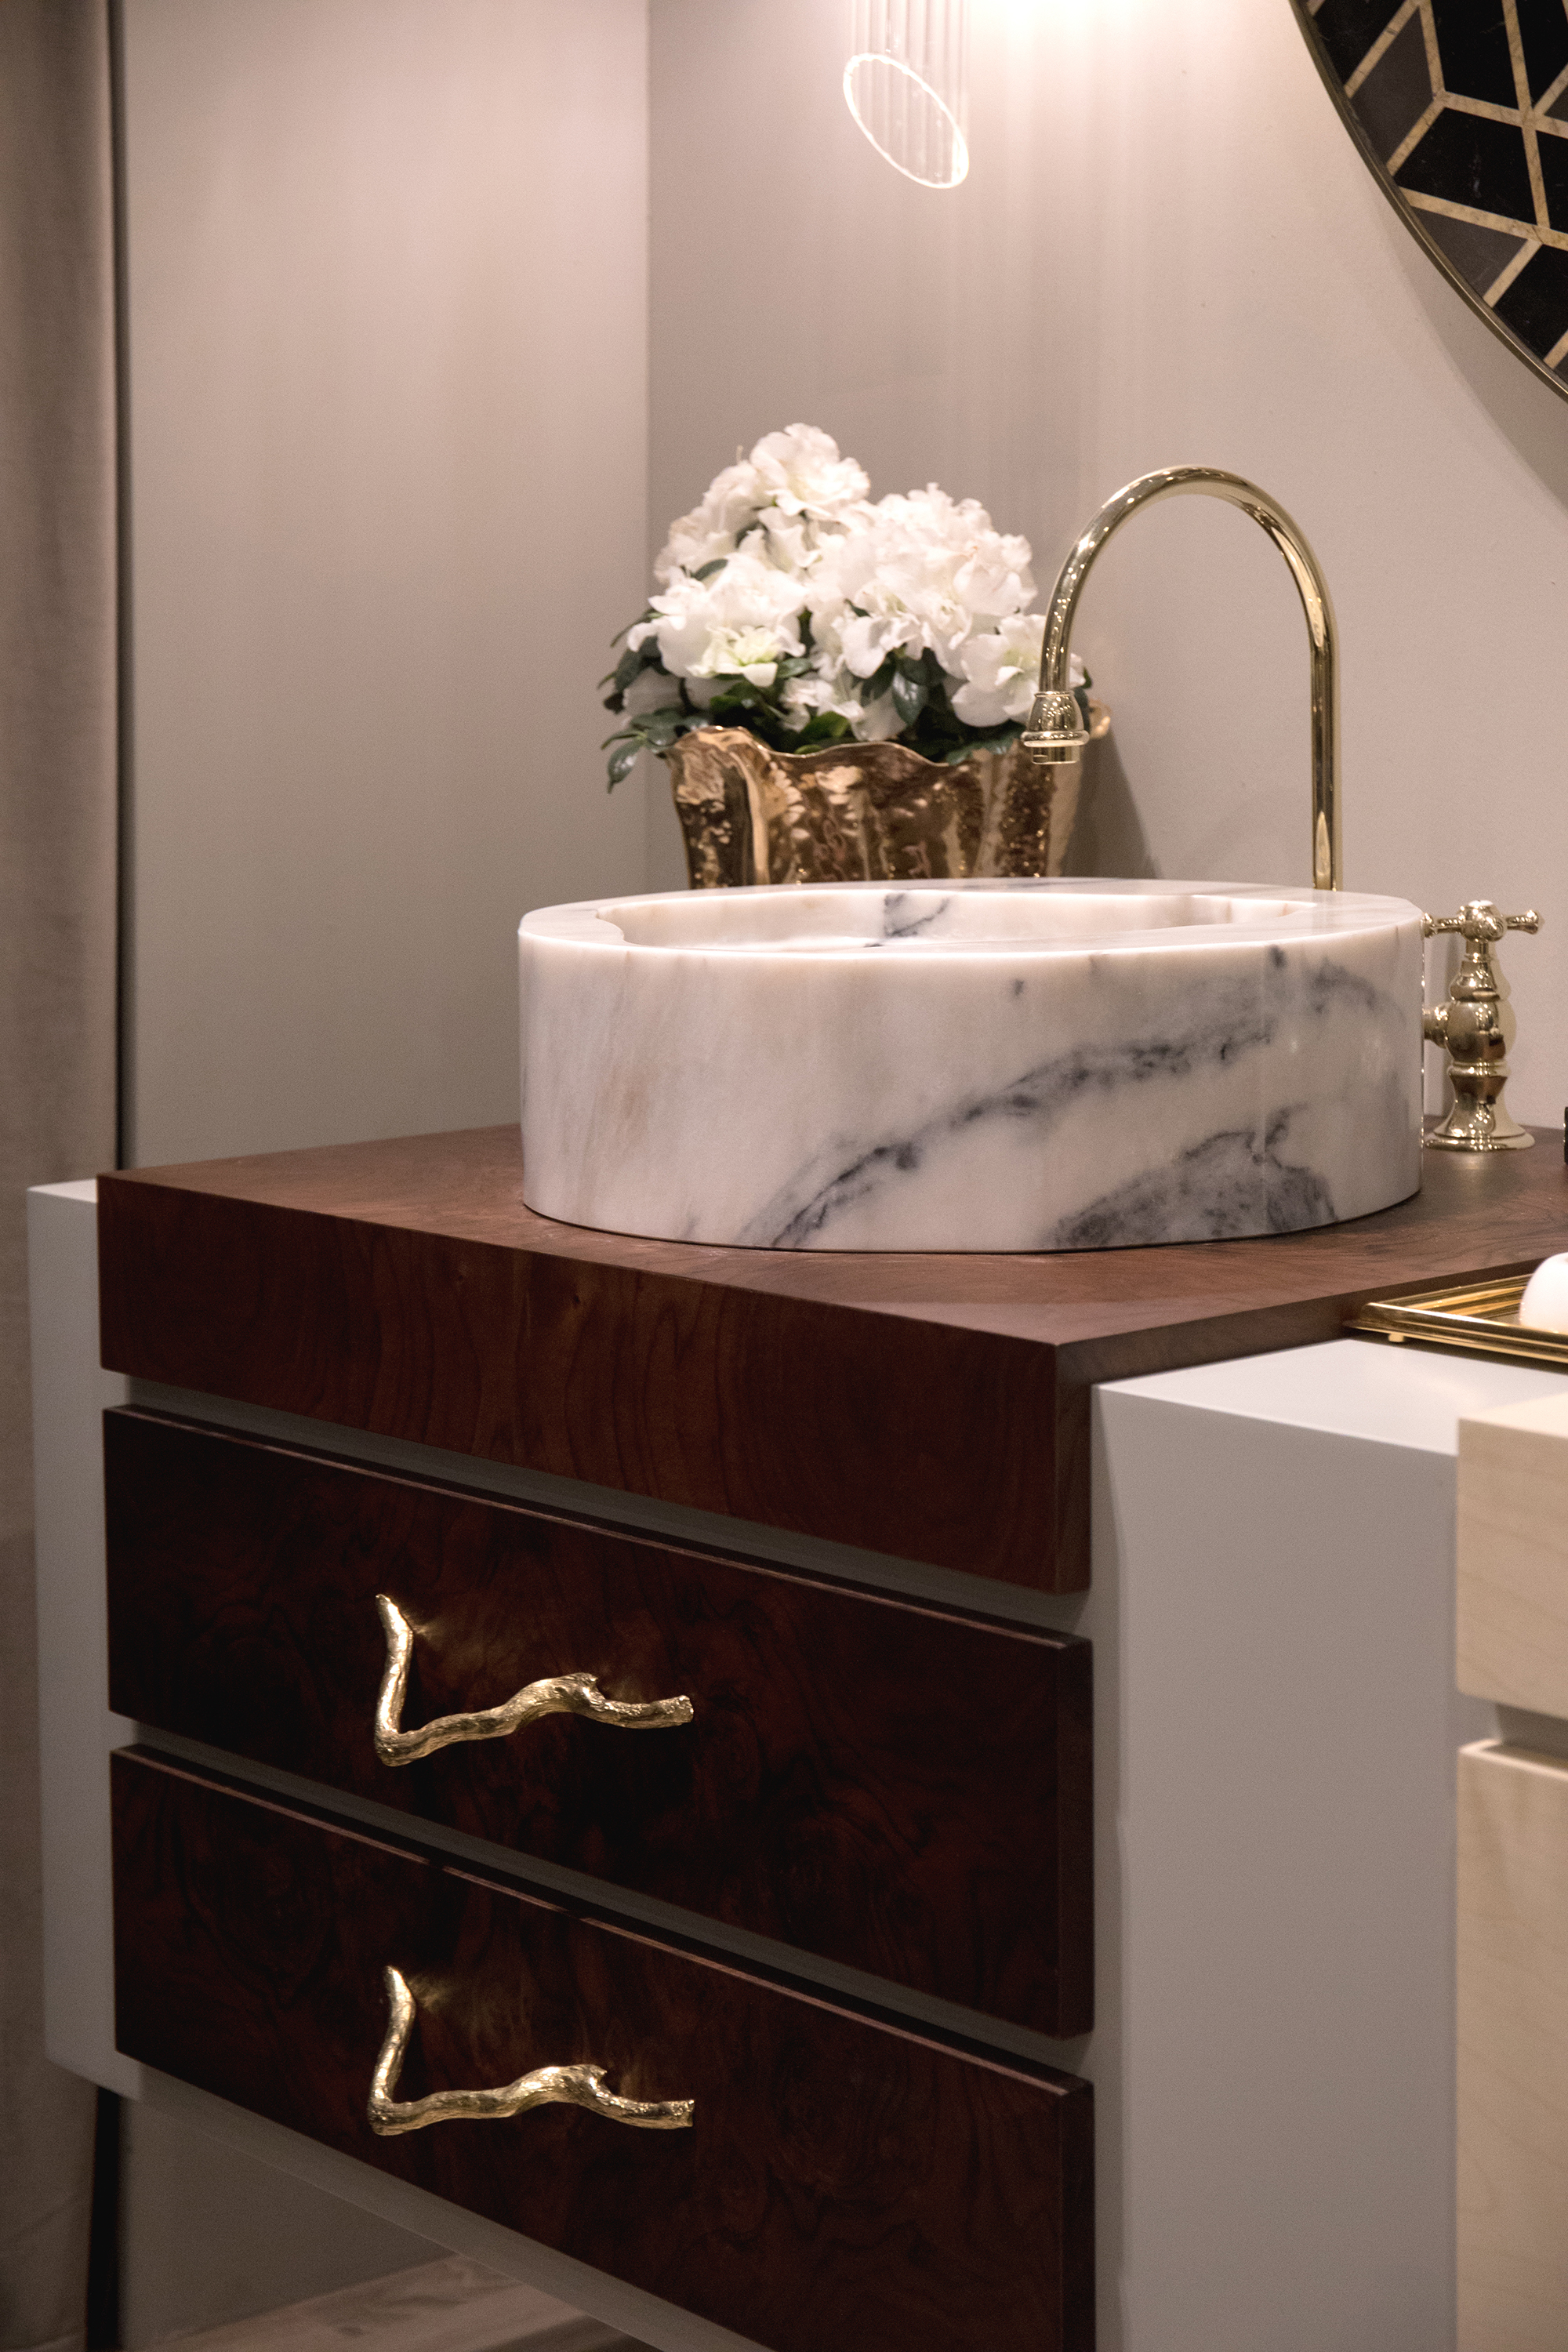 sinks Choose the Perfect Sinks for Your Luxury Bathroom – Top Tips 24